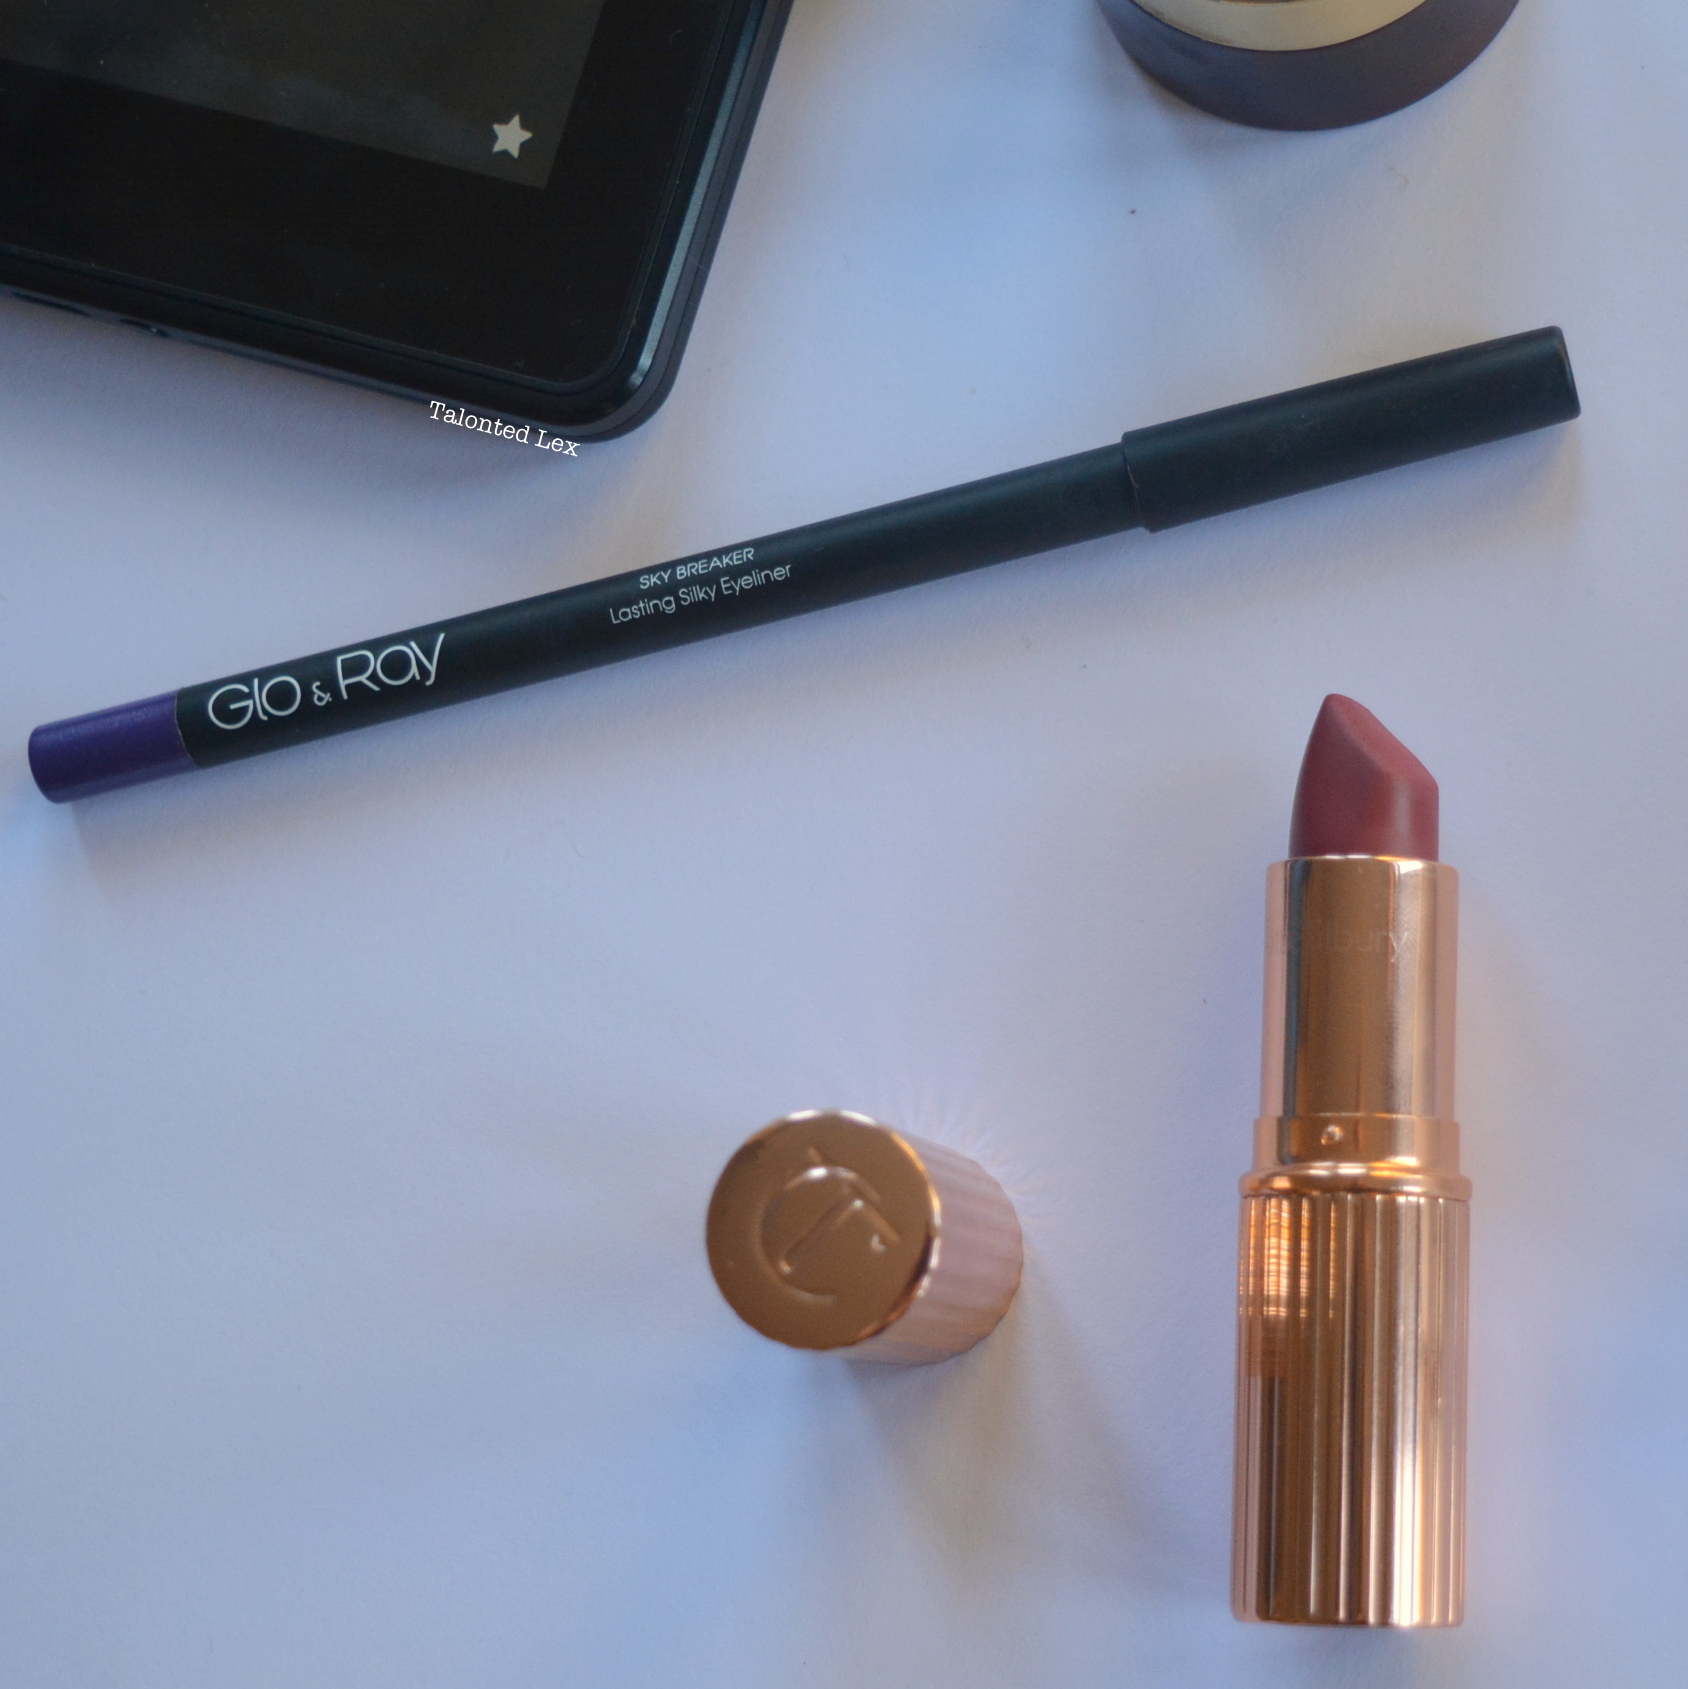 October-2015-Monthly-Beauty-and-Lifestyle-Favourites-Talonted-Lex-Charlotte-Tilbury-Glo-and-Ray-Eyeliner